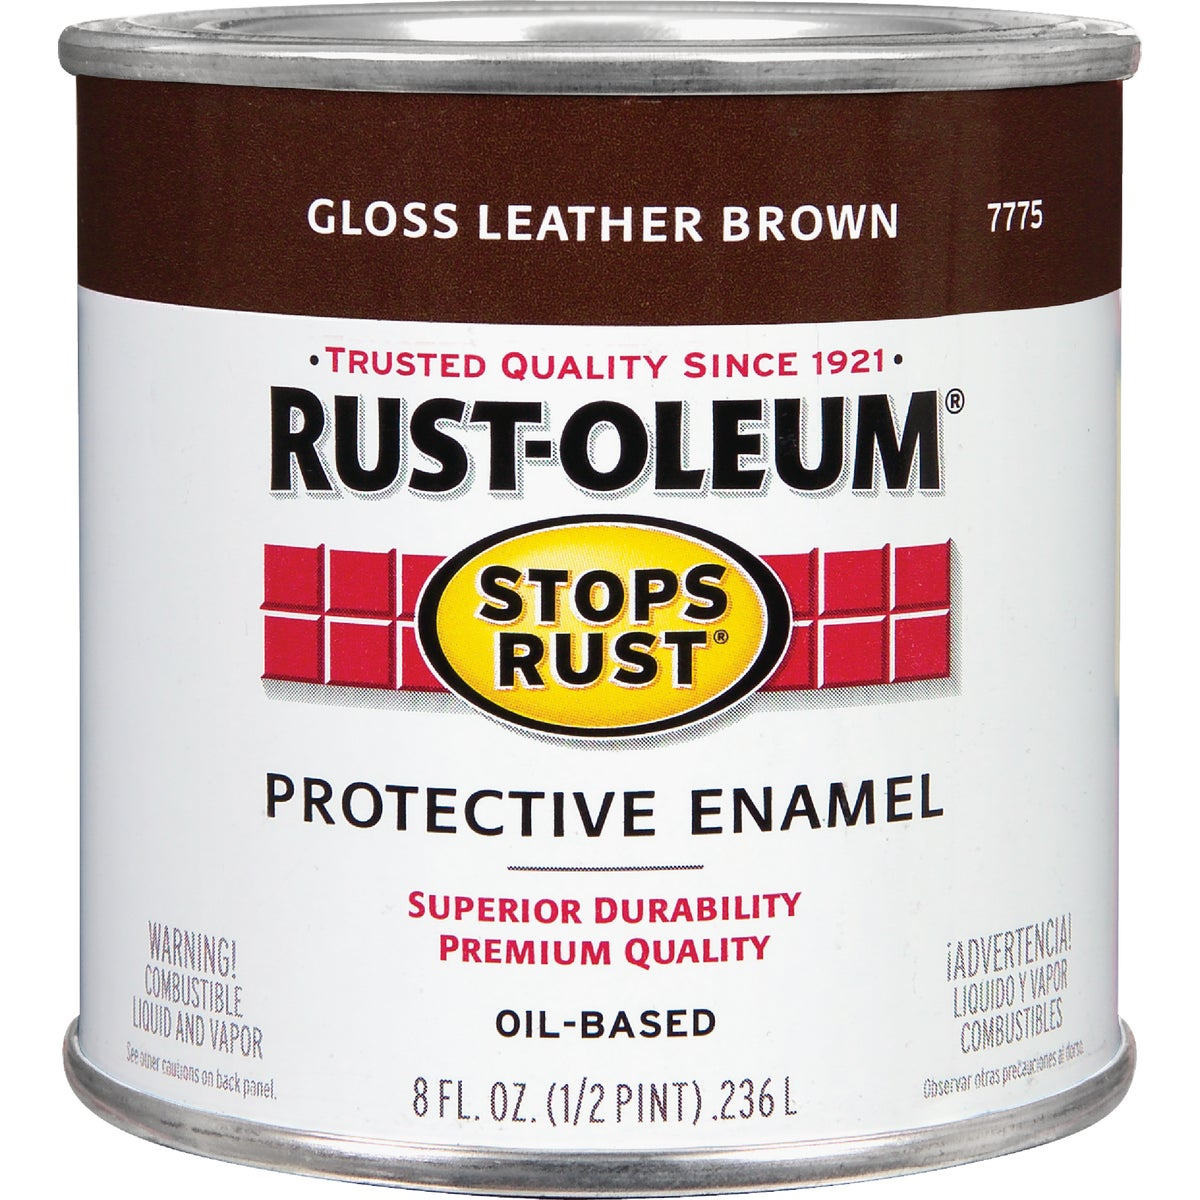 LEATHER BROWN ENAMEL - 7775-730 by Rustoleum